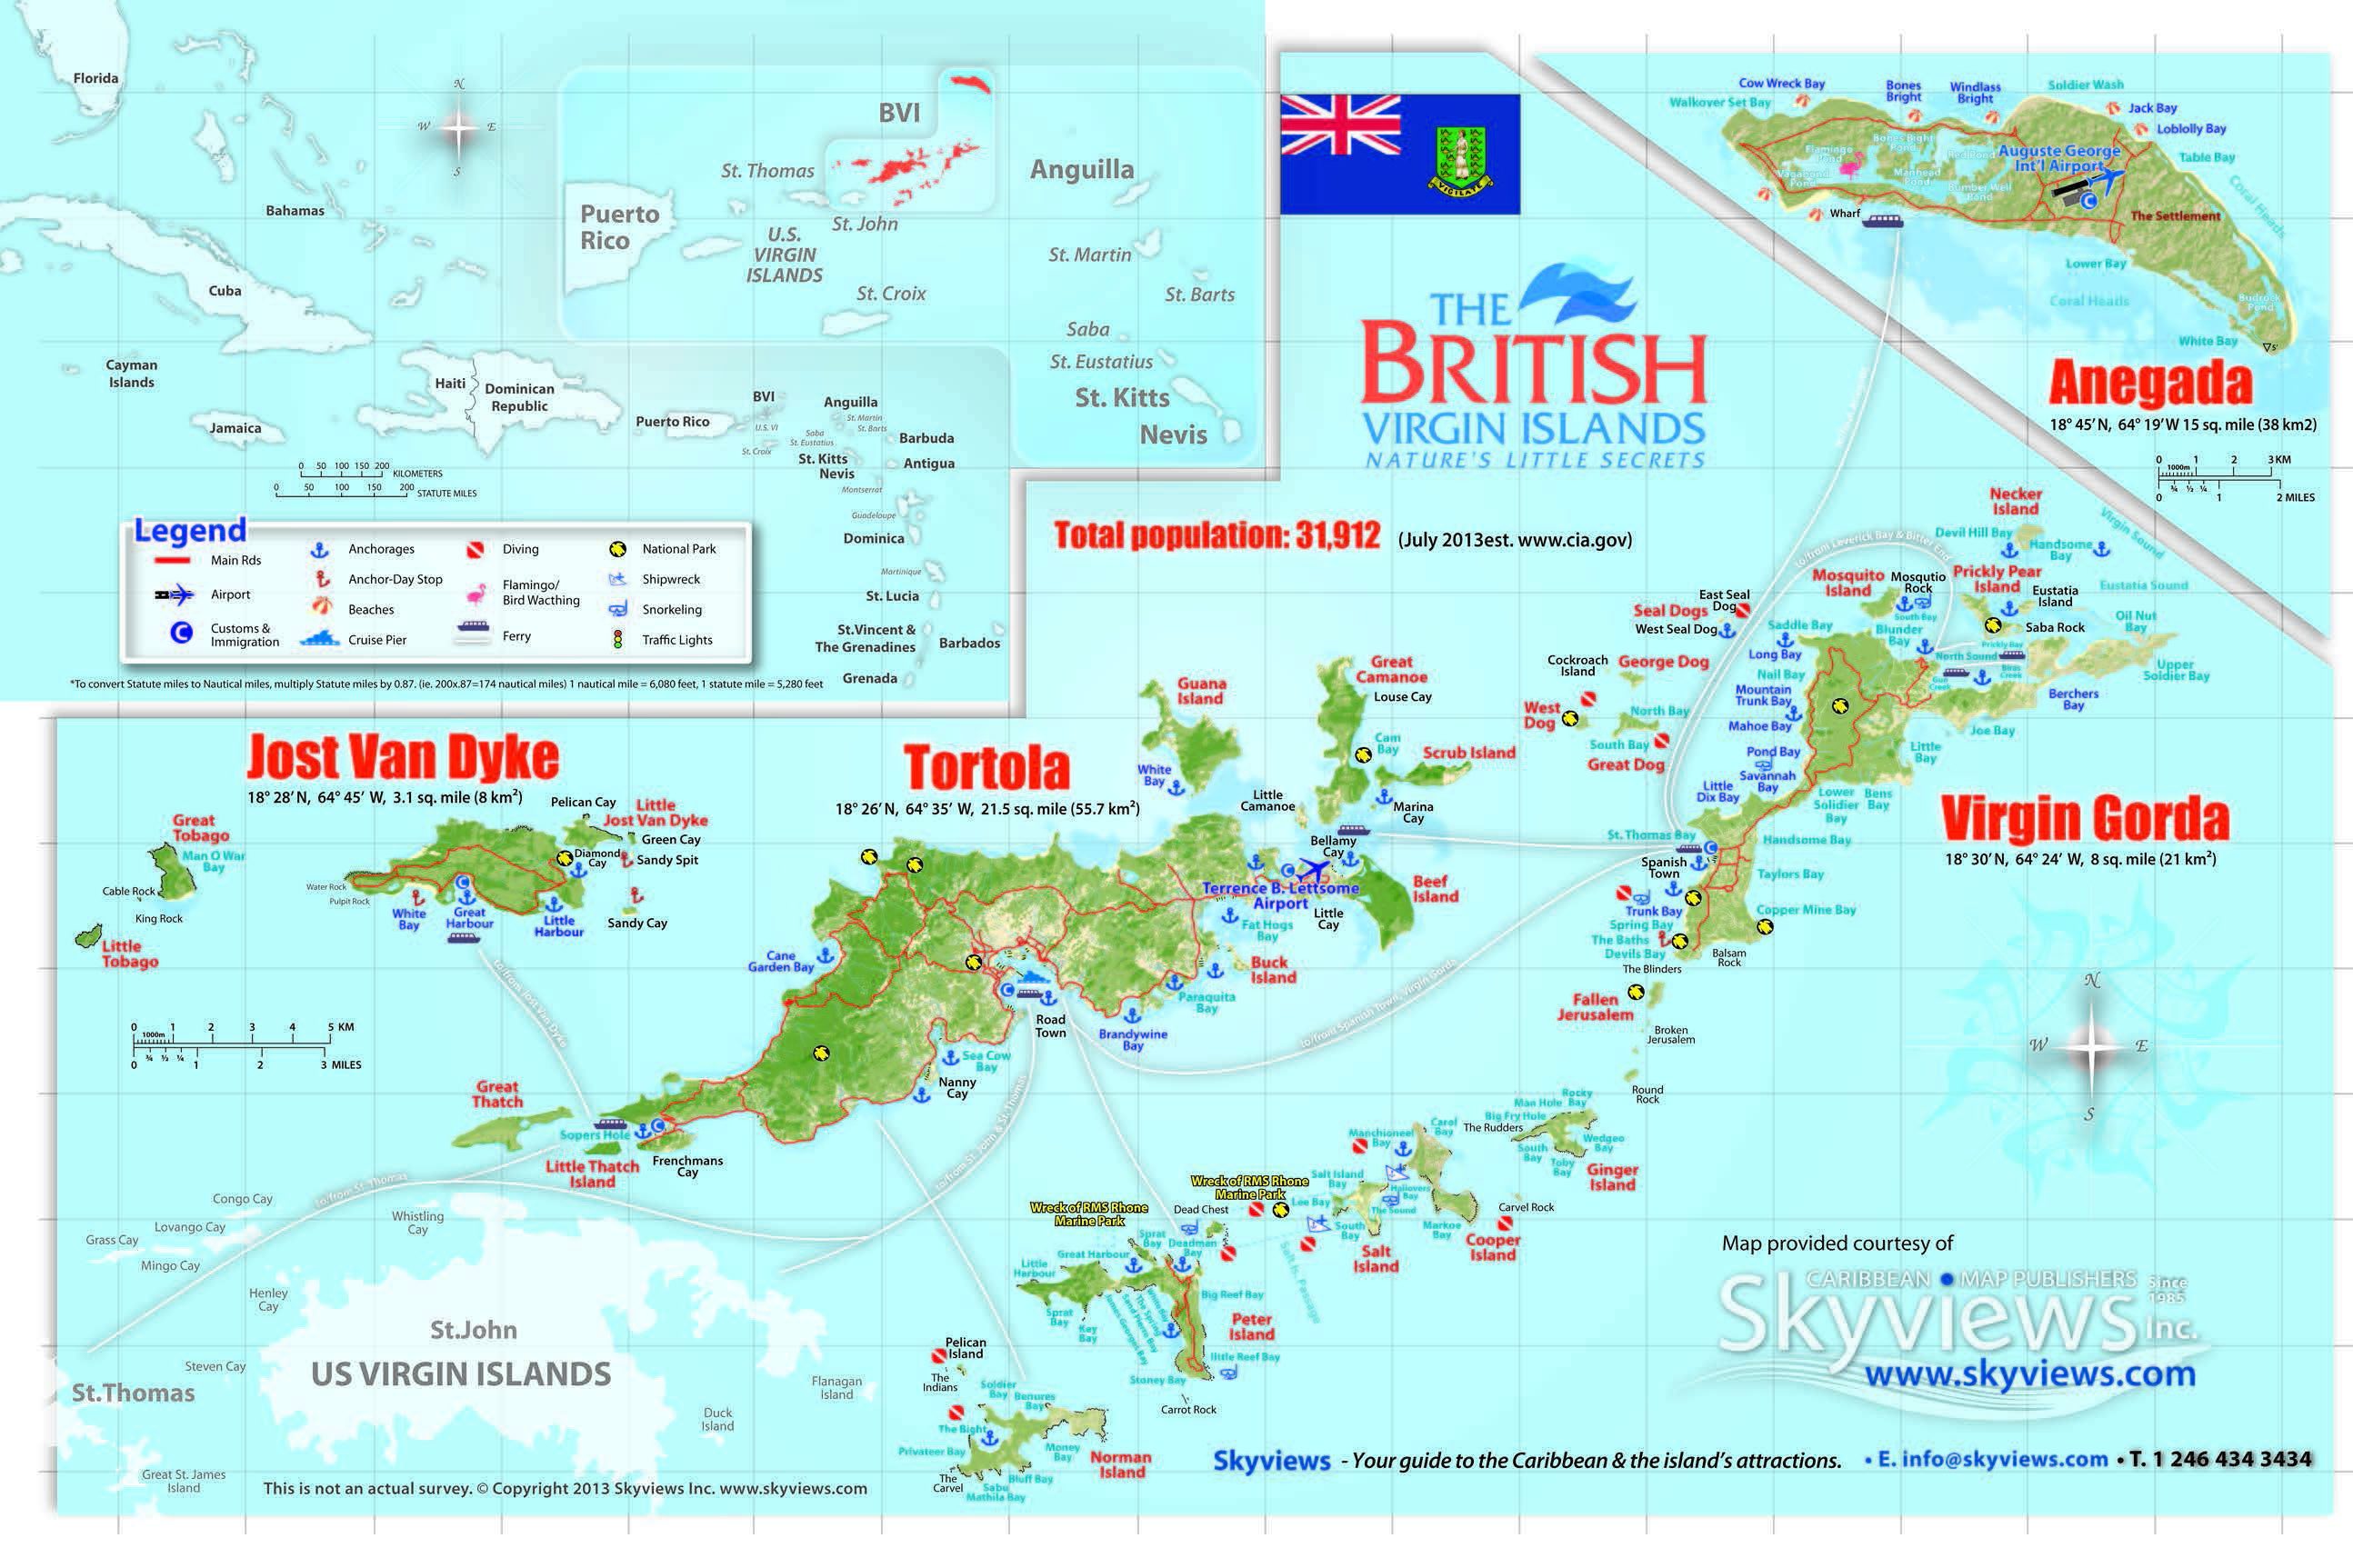 MarineMax Vacations Map Of The BVI GO Maps Islands - Map of virgin islands us and british